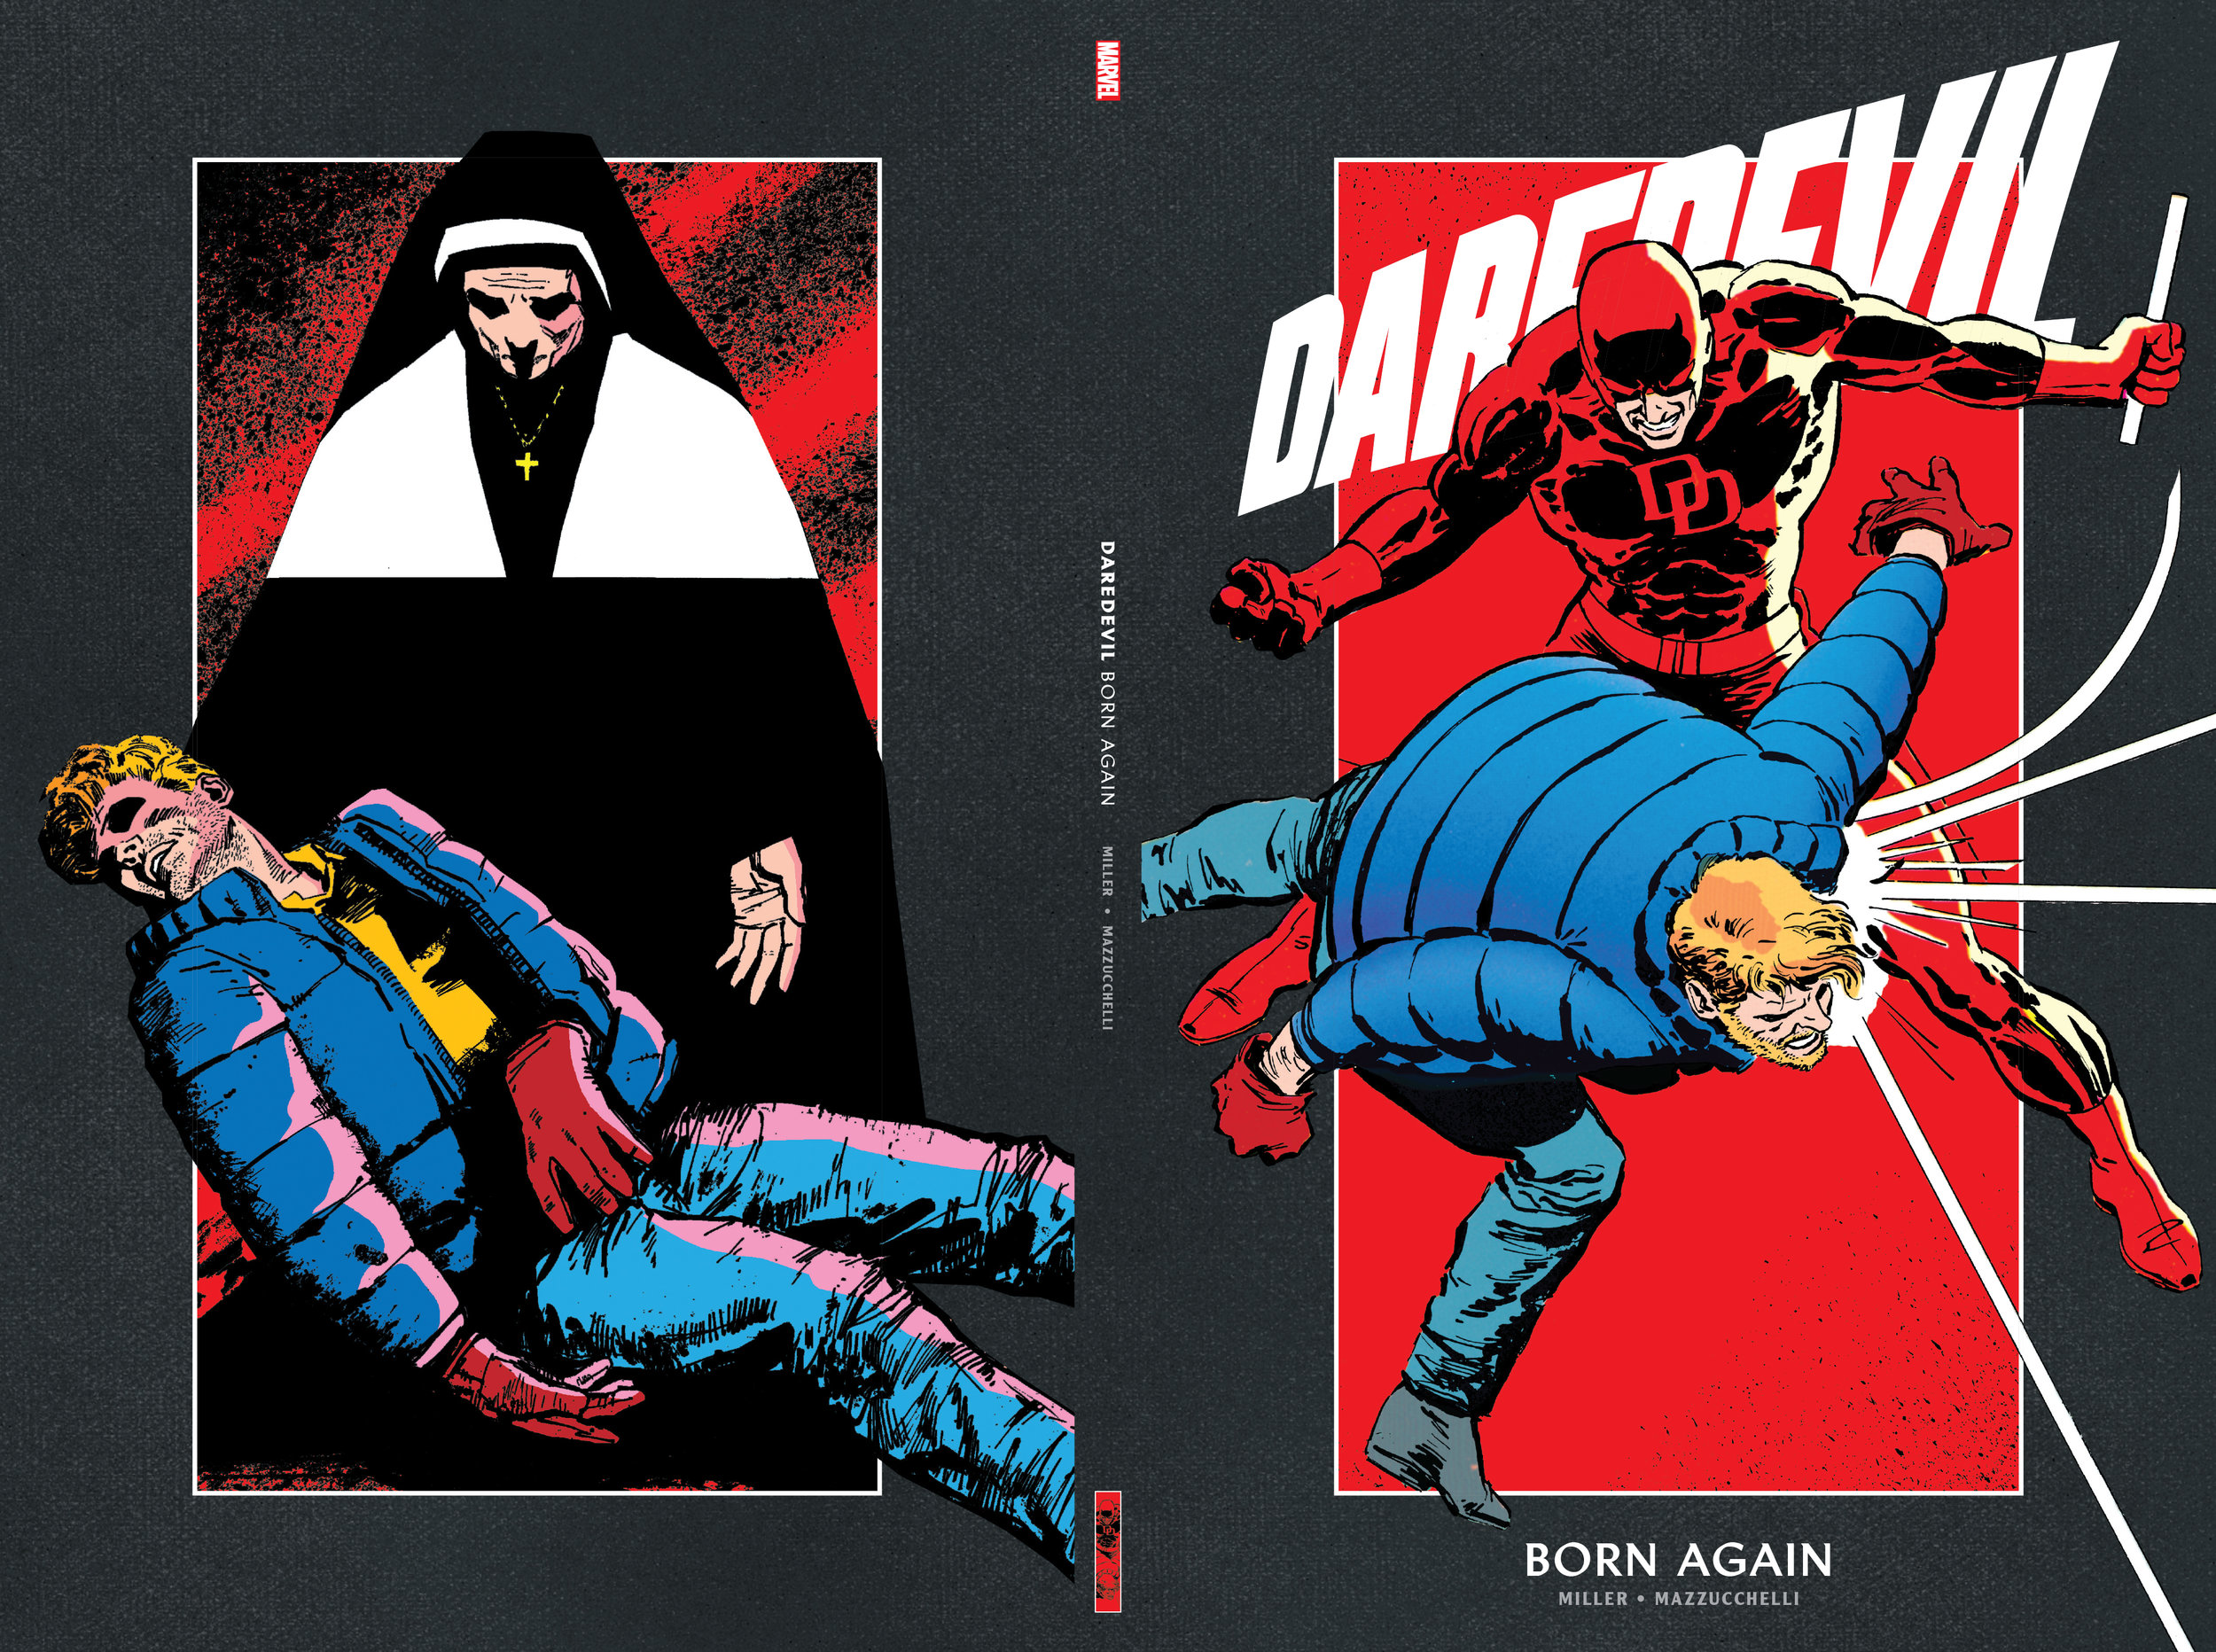 Design and layout for the  Daredevil by Frank Miller  boxset. Content copyright Marvel Entertainment, 2019.